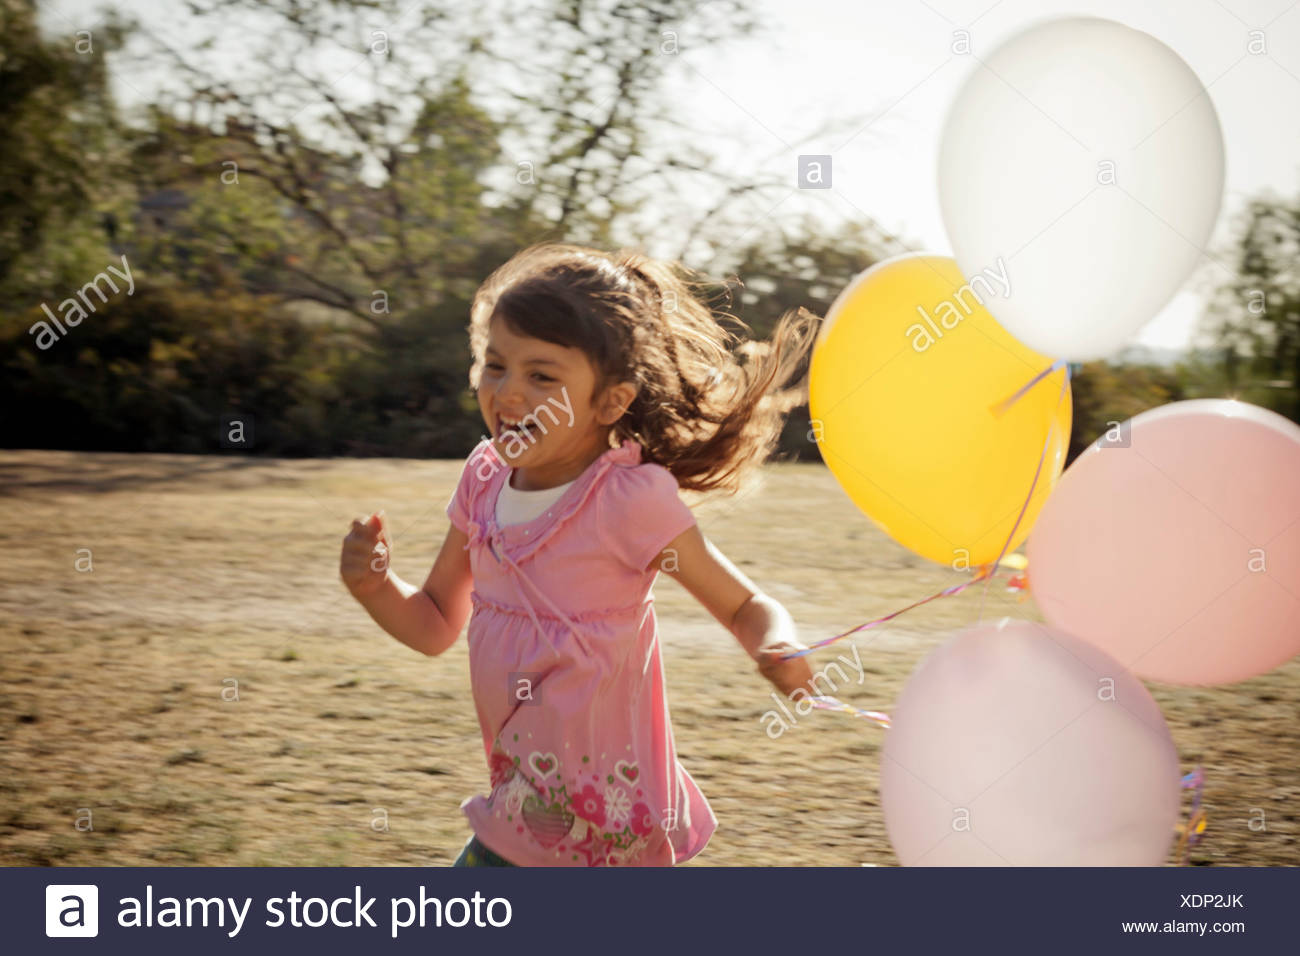 Girl running with balloons - Stock Image